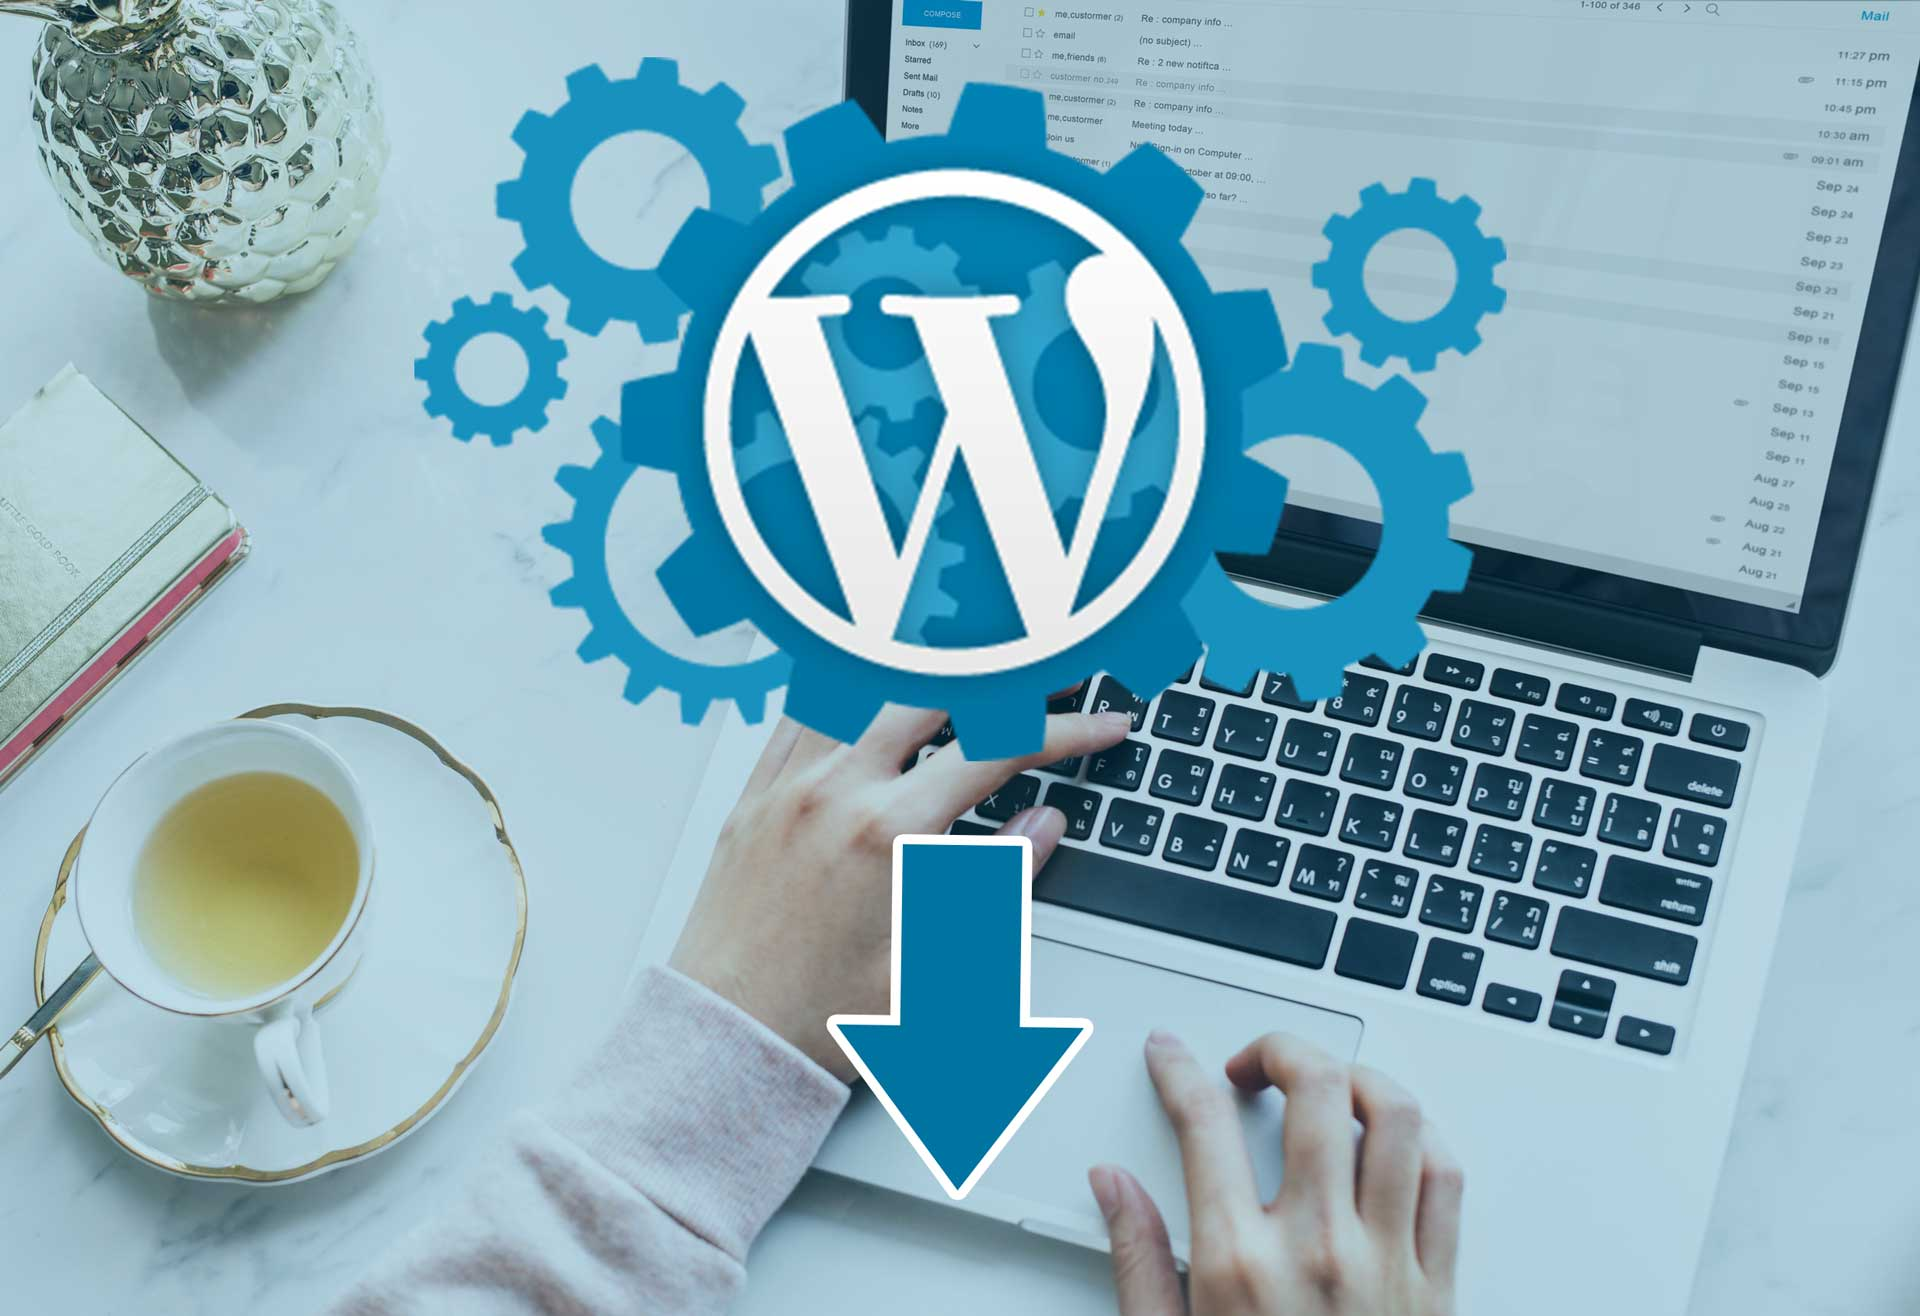 How to migrate a wordpress site manually from online host to local host